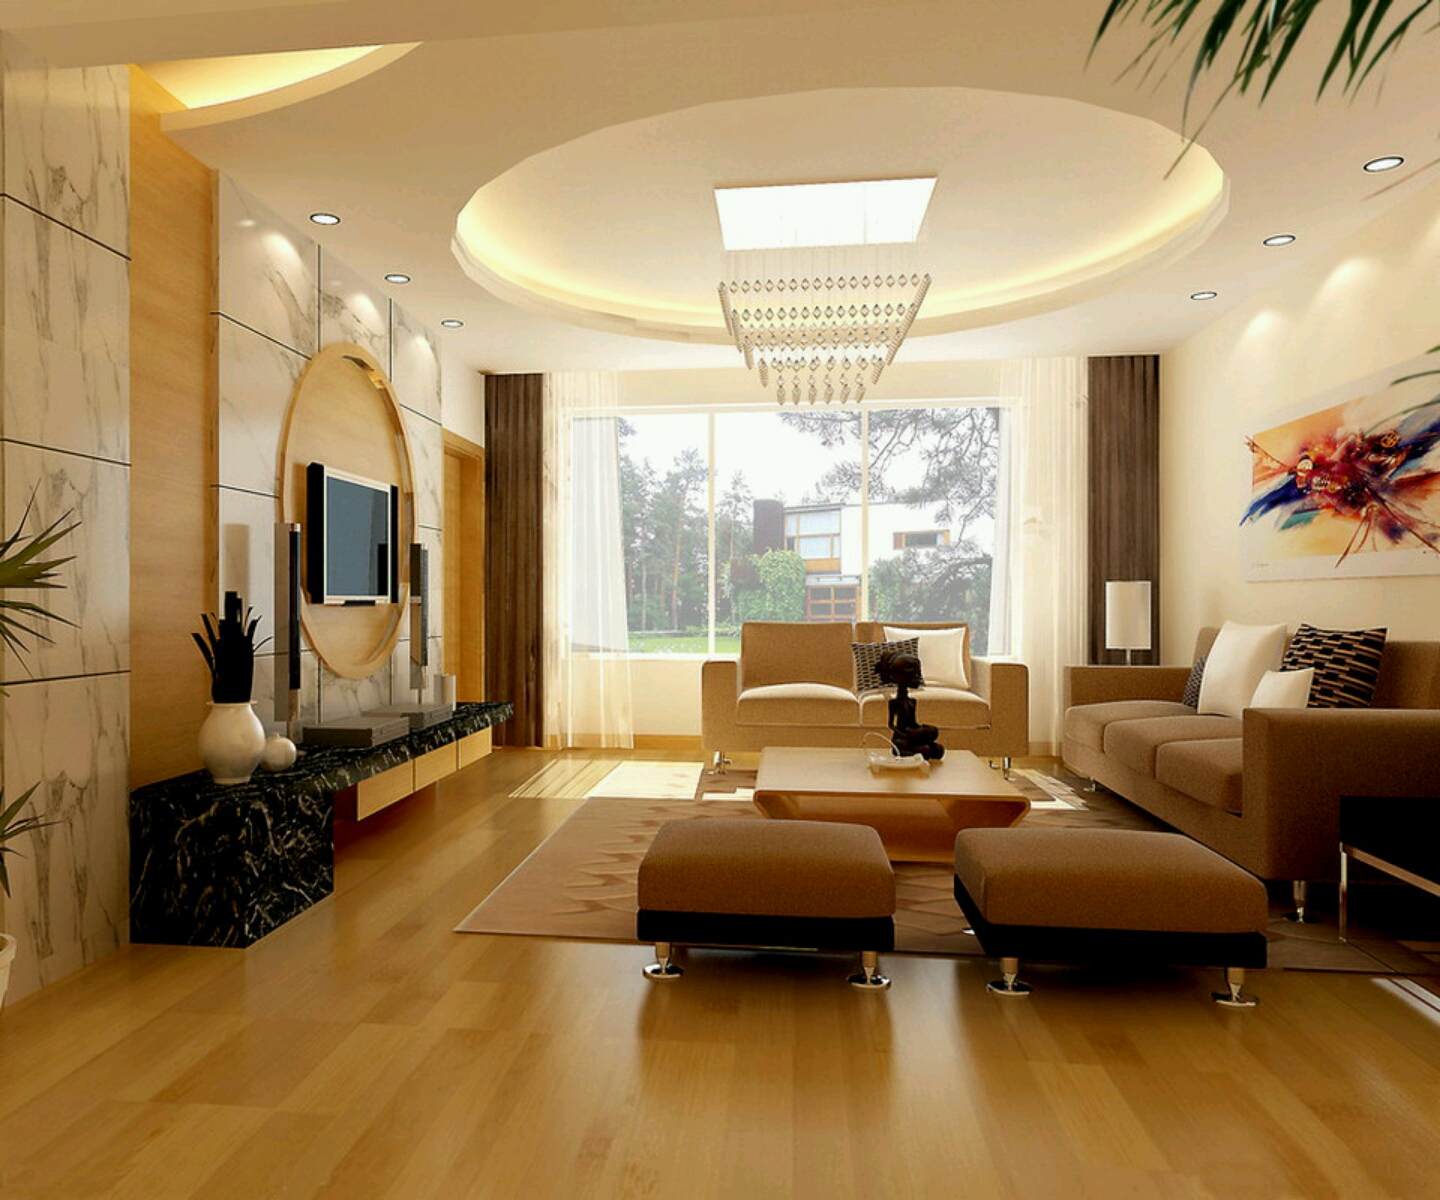 Home Design Ideas Pictures: Modern Interior Decoration Living Rooms Ceiling Designs